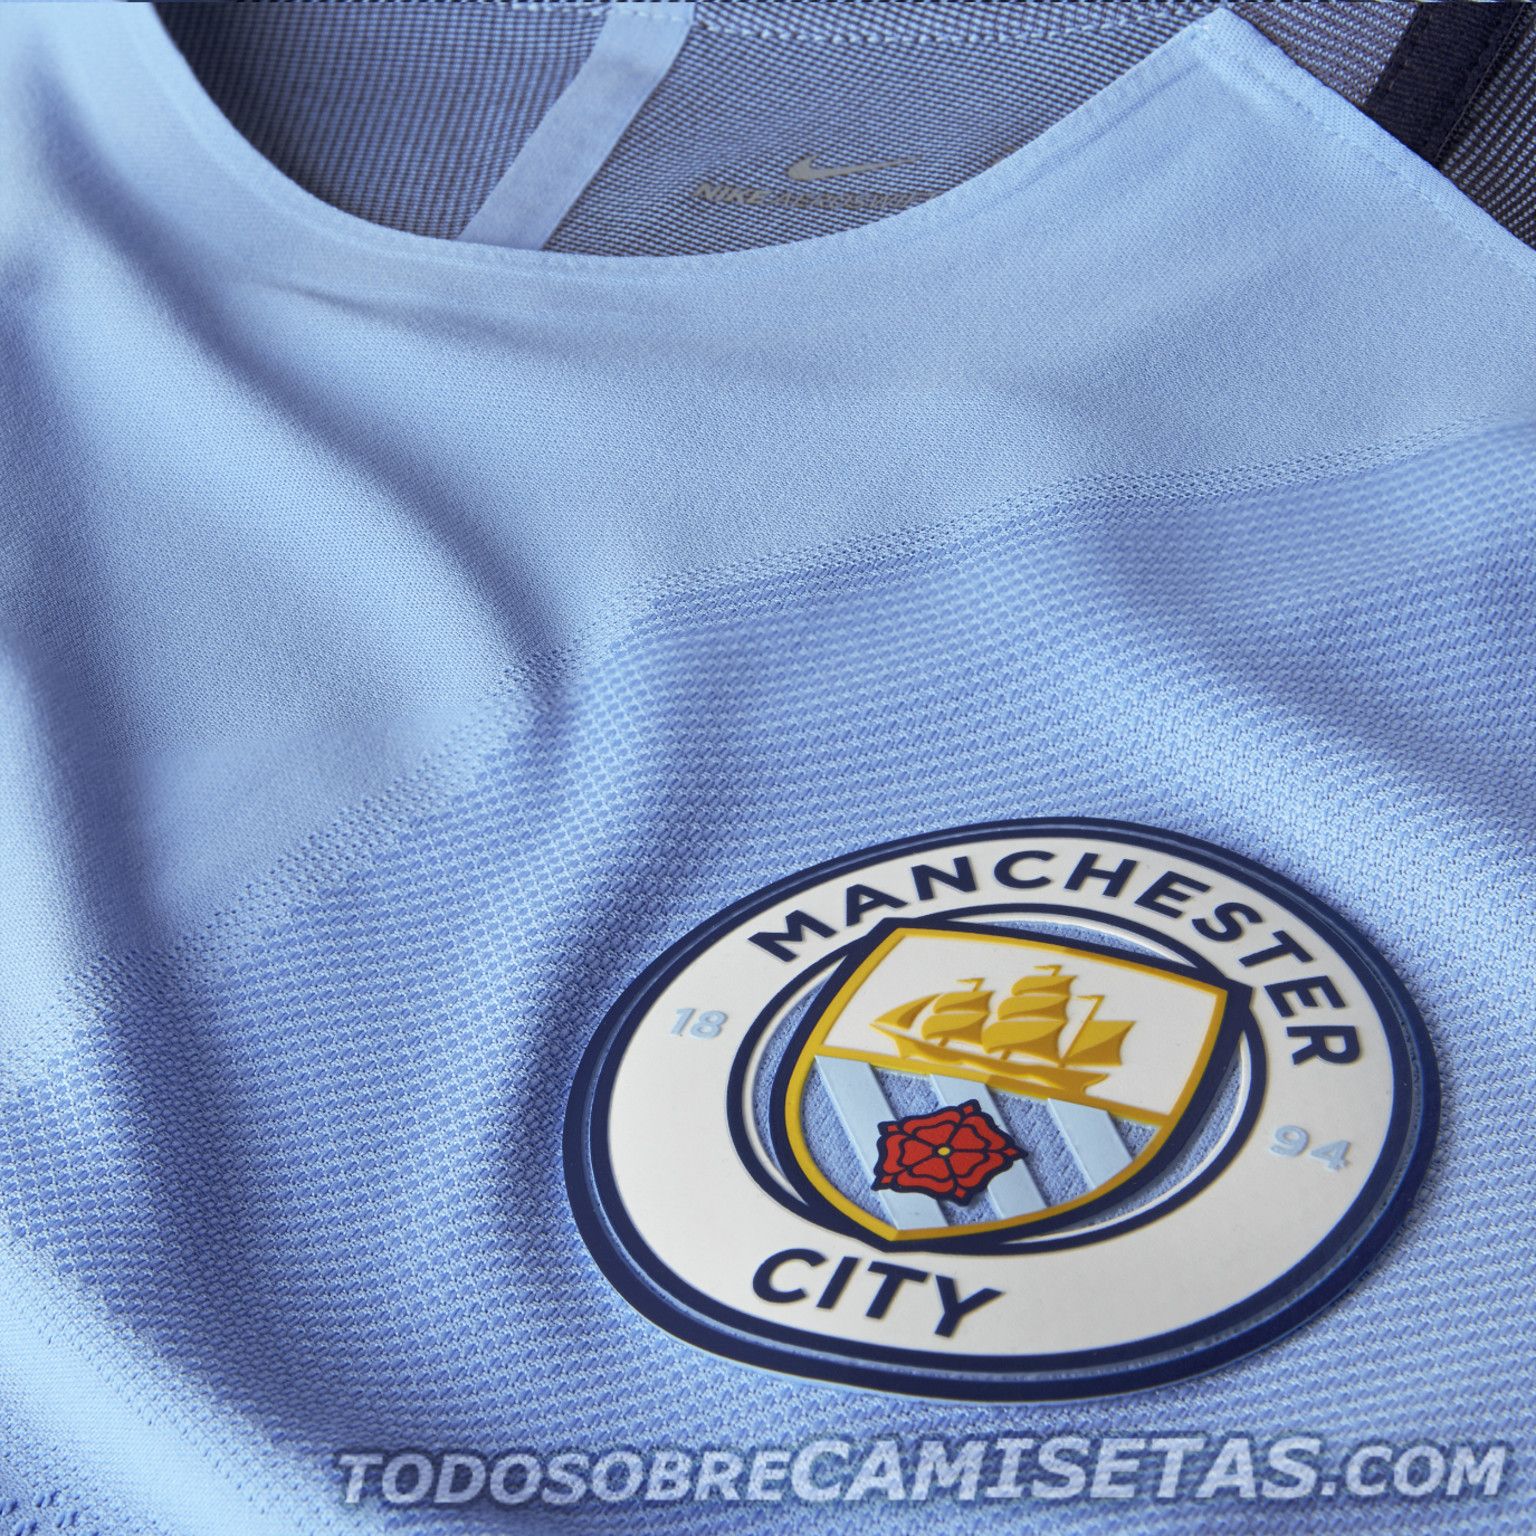 Manchester-City-2016-17-NIKE-new-home-kit-7.jpg